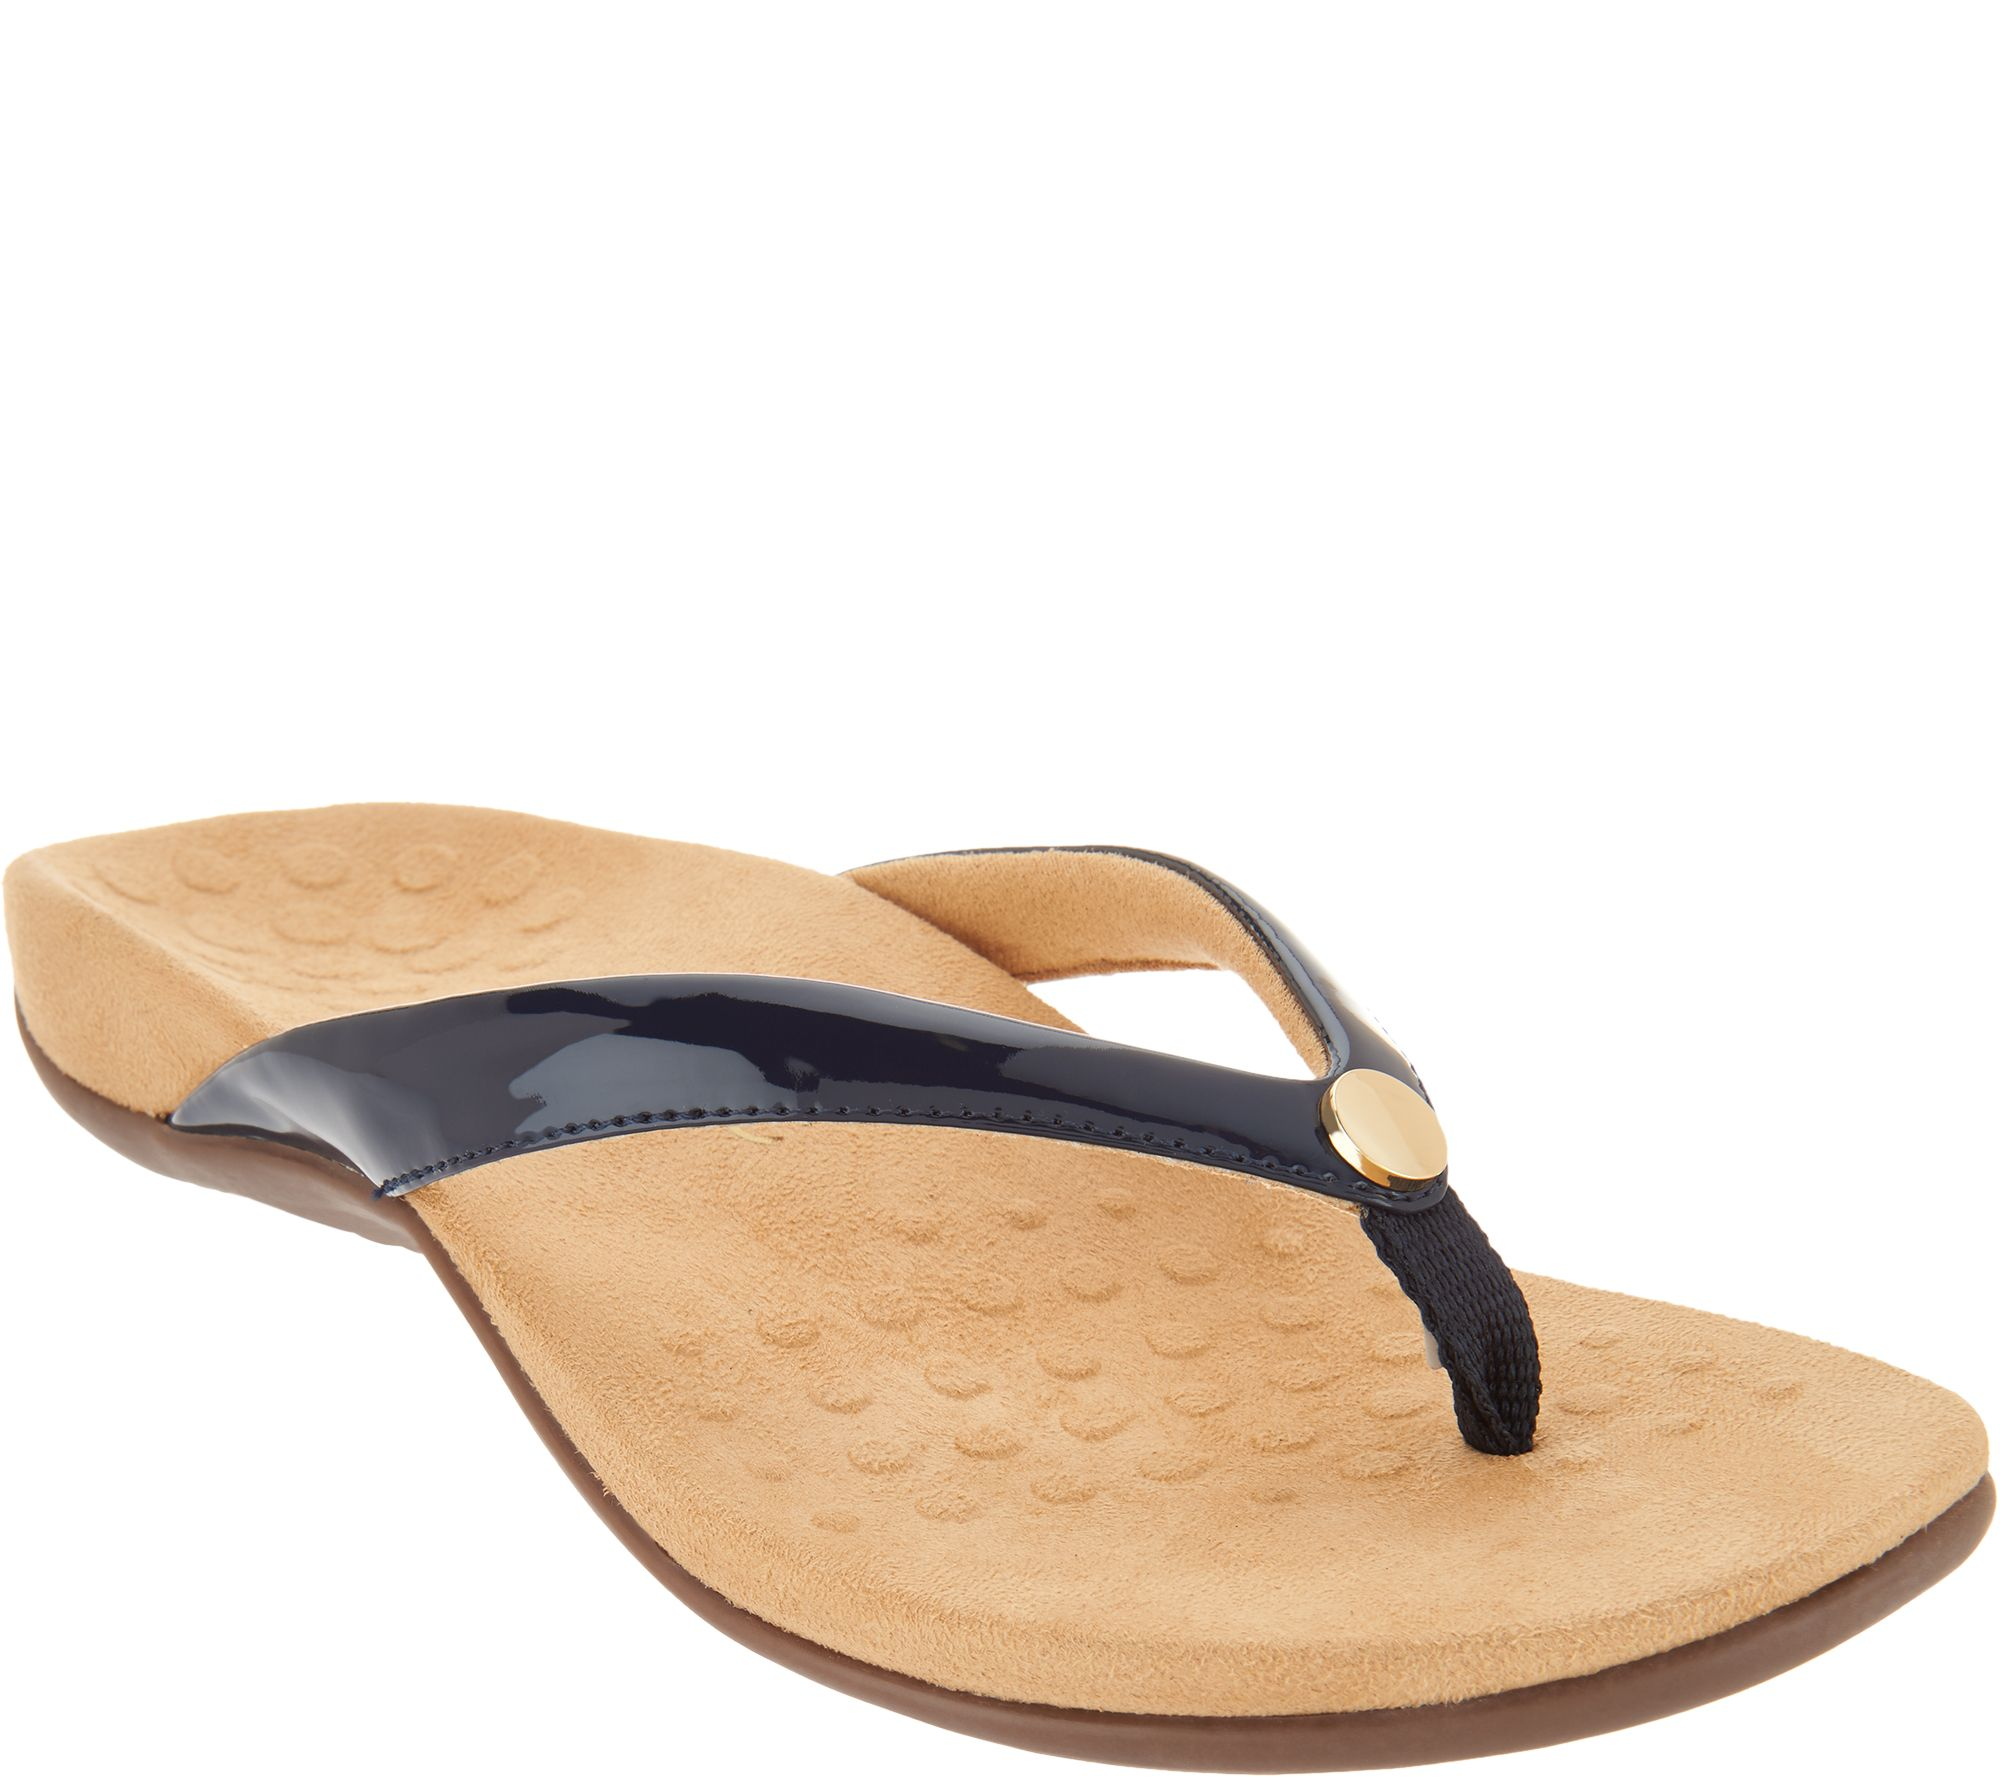 8ae8e8070ee44 Vionic Thong Sandals w  Button - Mona - Page 1 — QVC.com